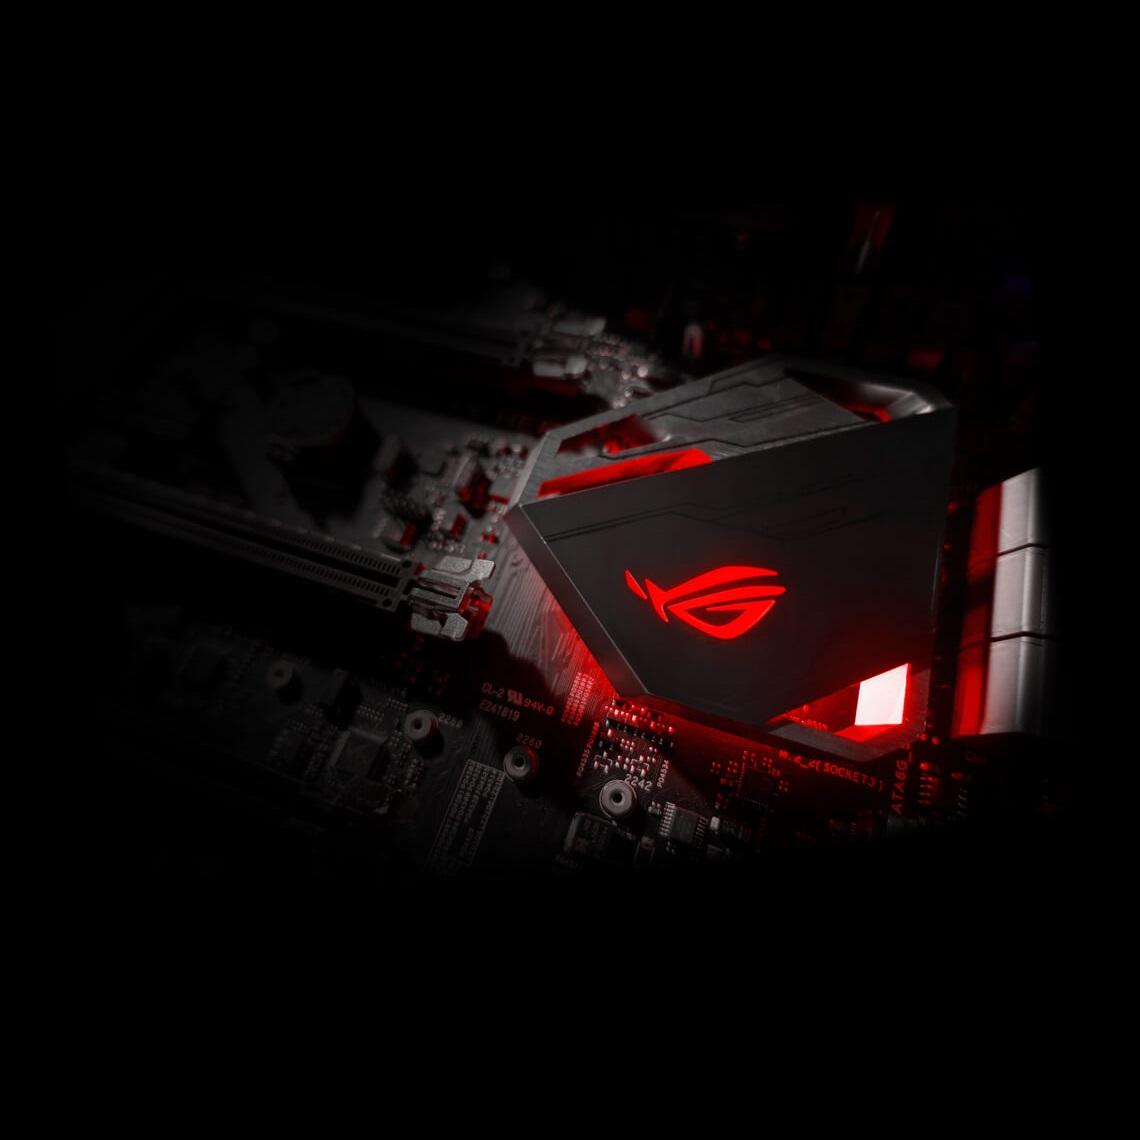 ASUS Maximus IX Hero HOLLOW HEAT-SINK WITH RED-HOT STYLE